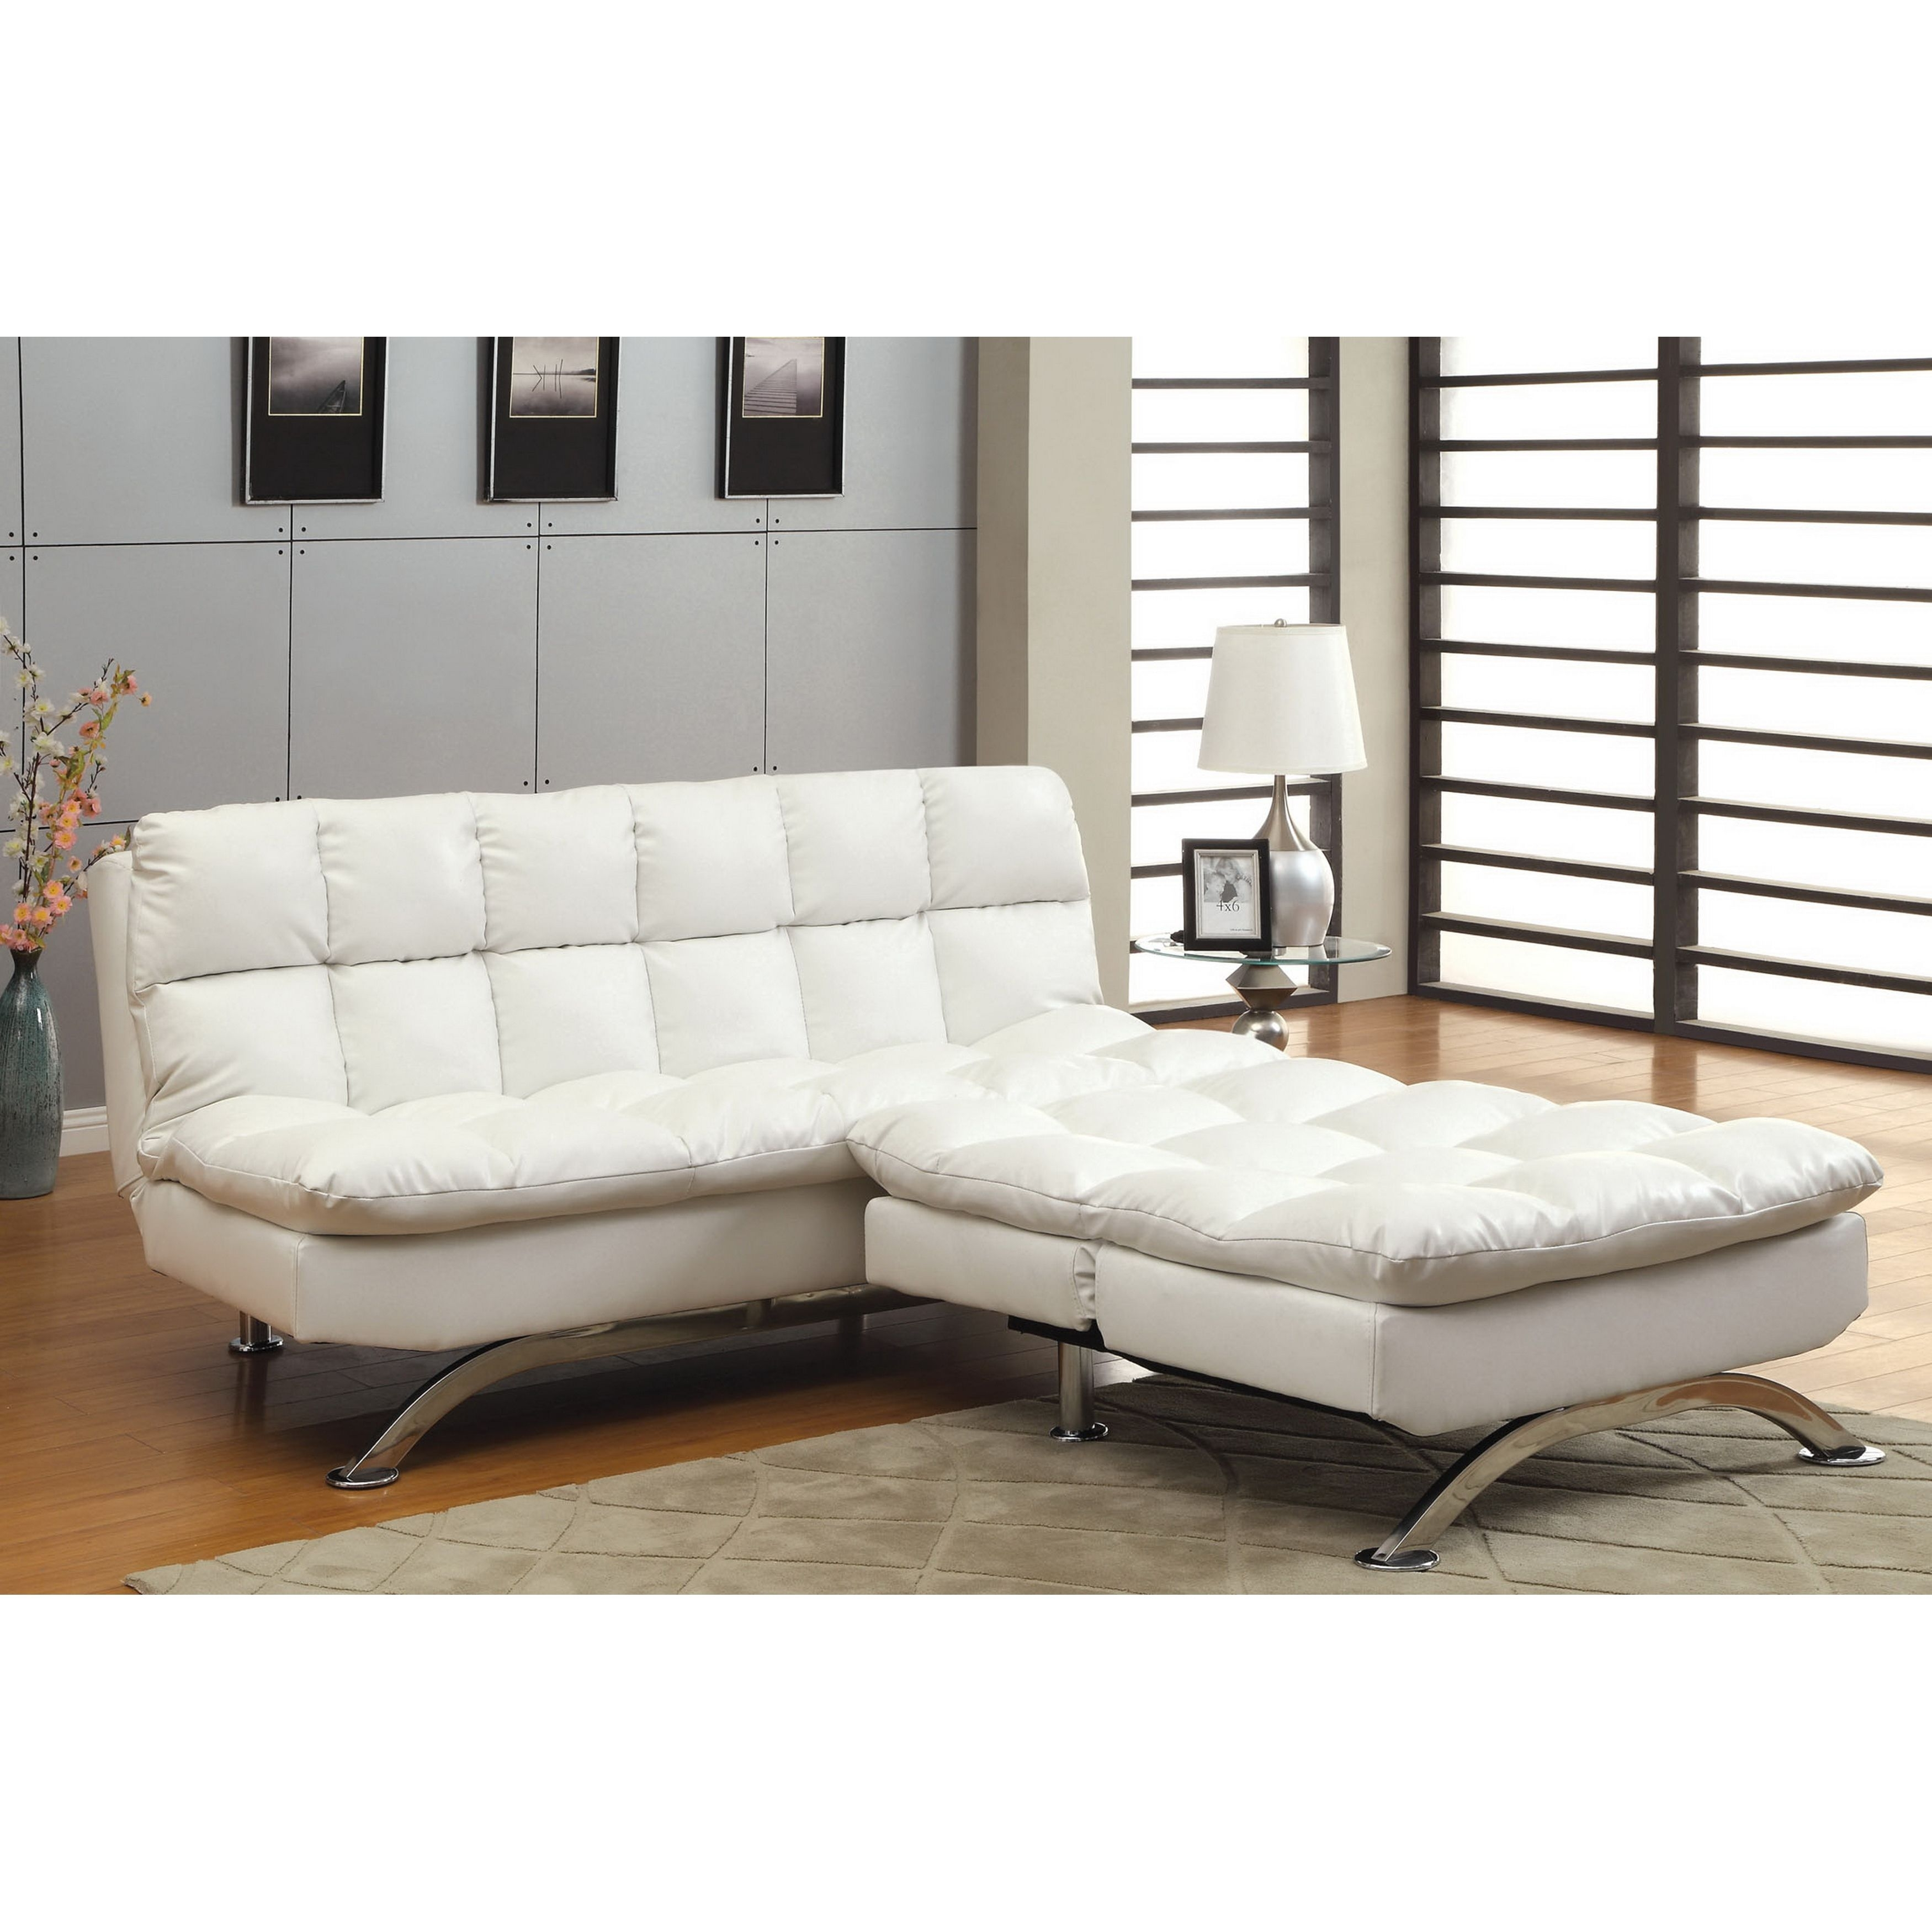 10 Collection of Jamaica Sectional Sofas  Sofa Ideas